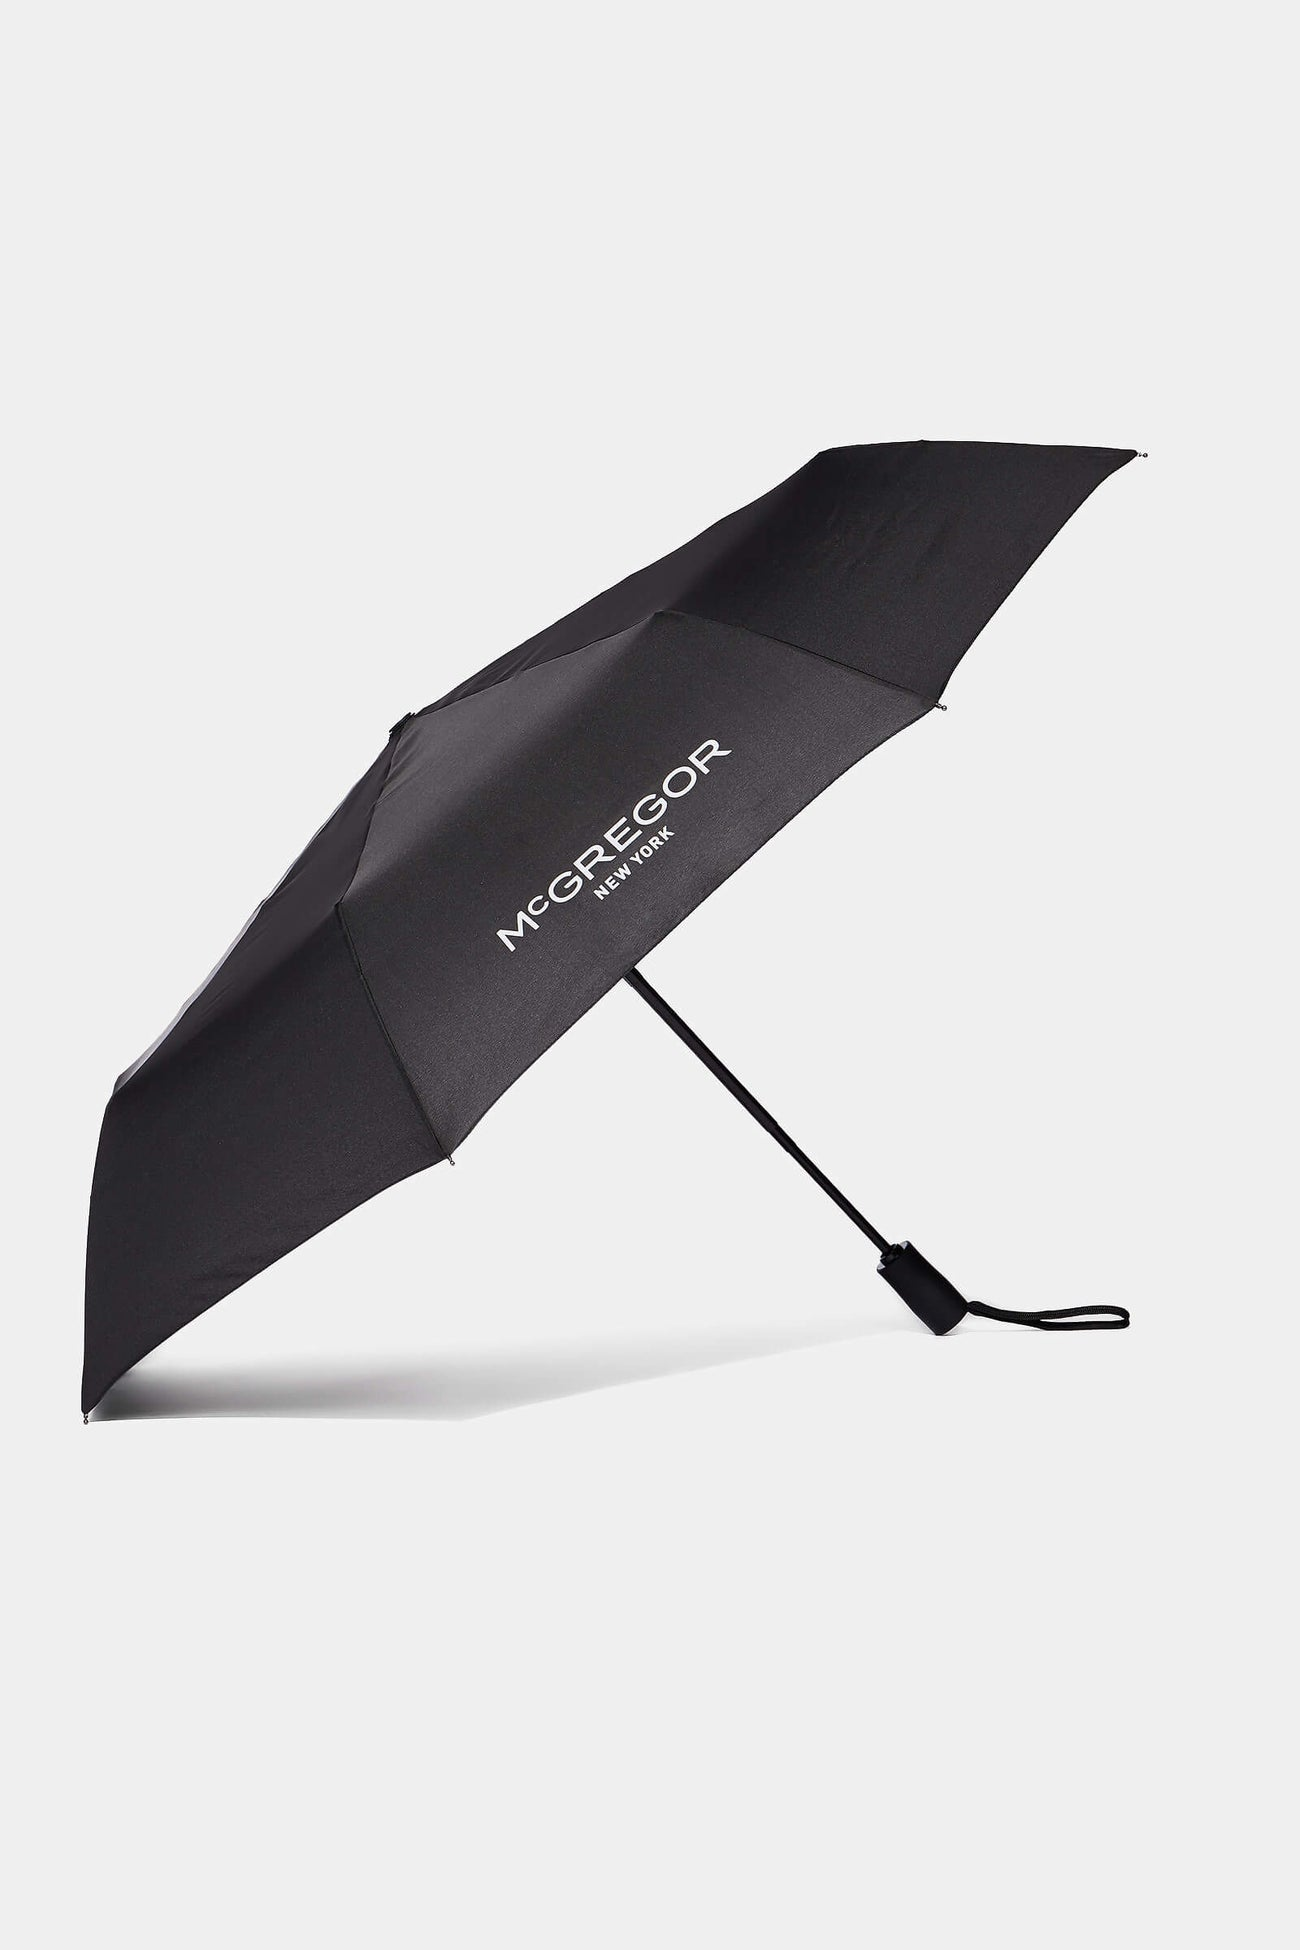 McG collapsible umbrella